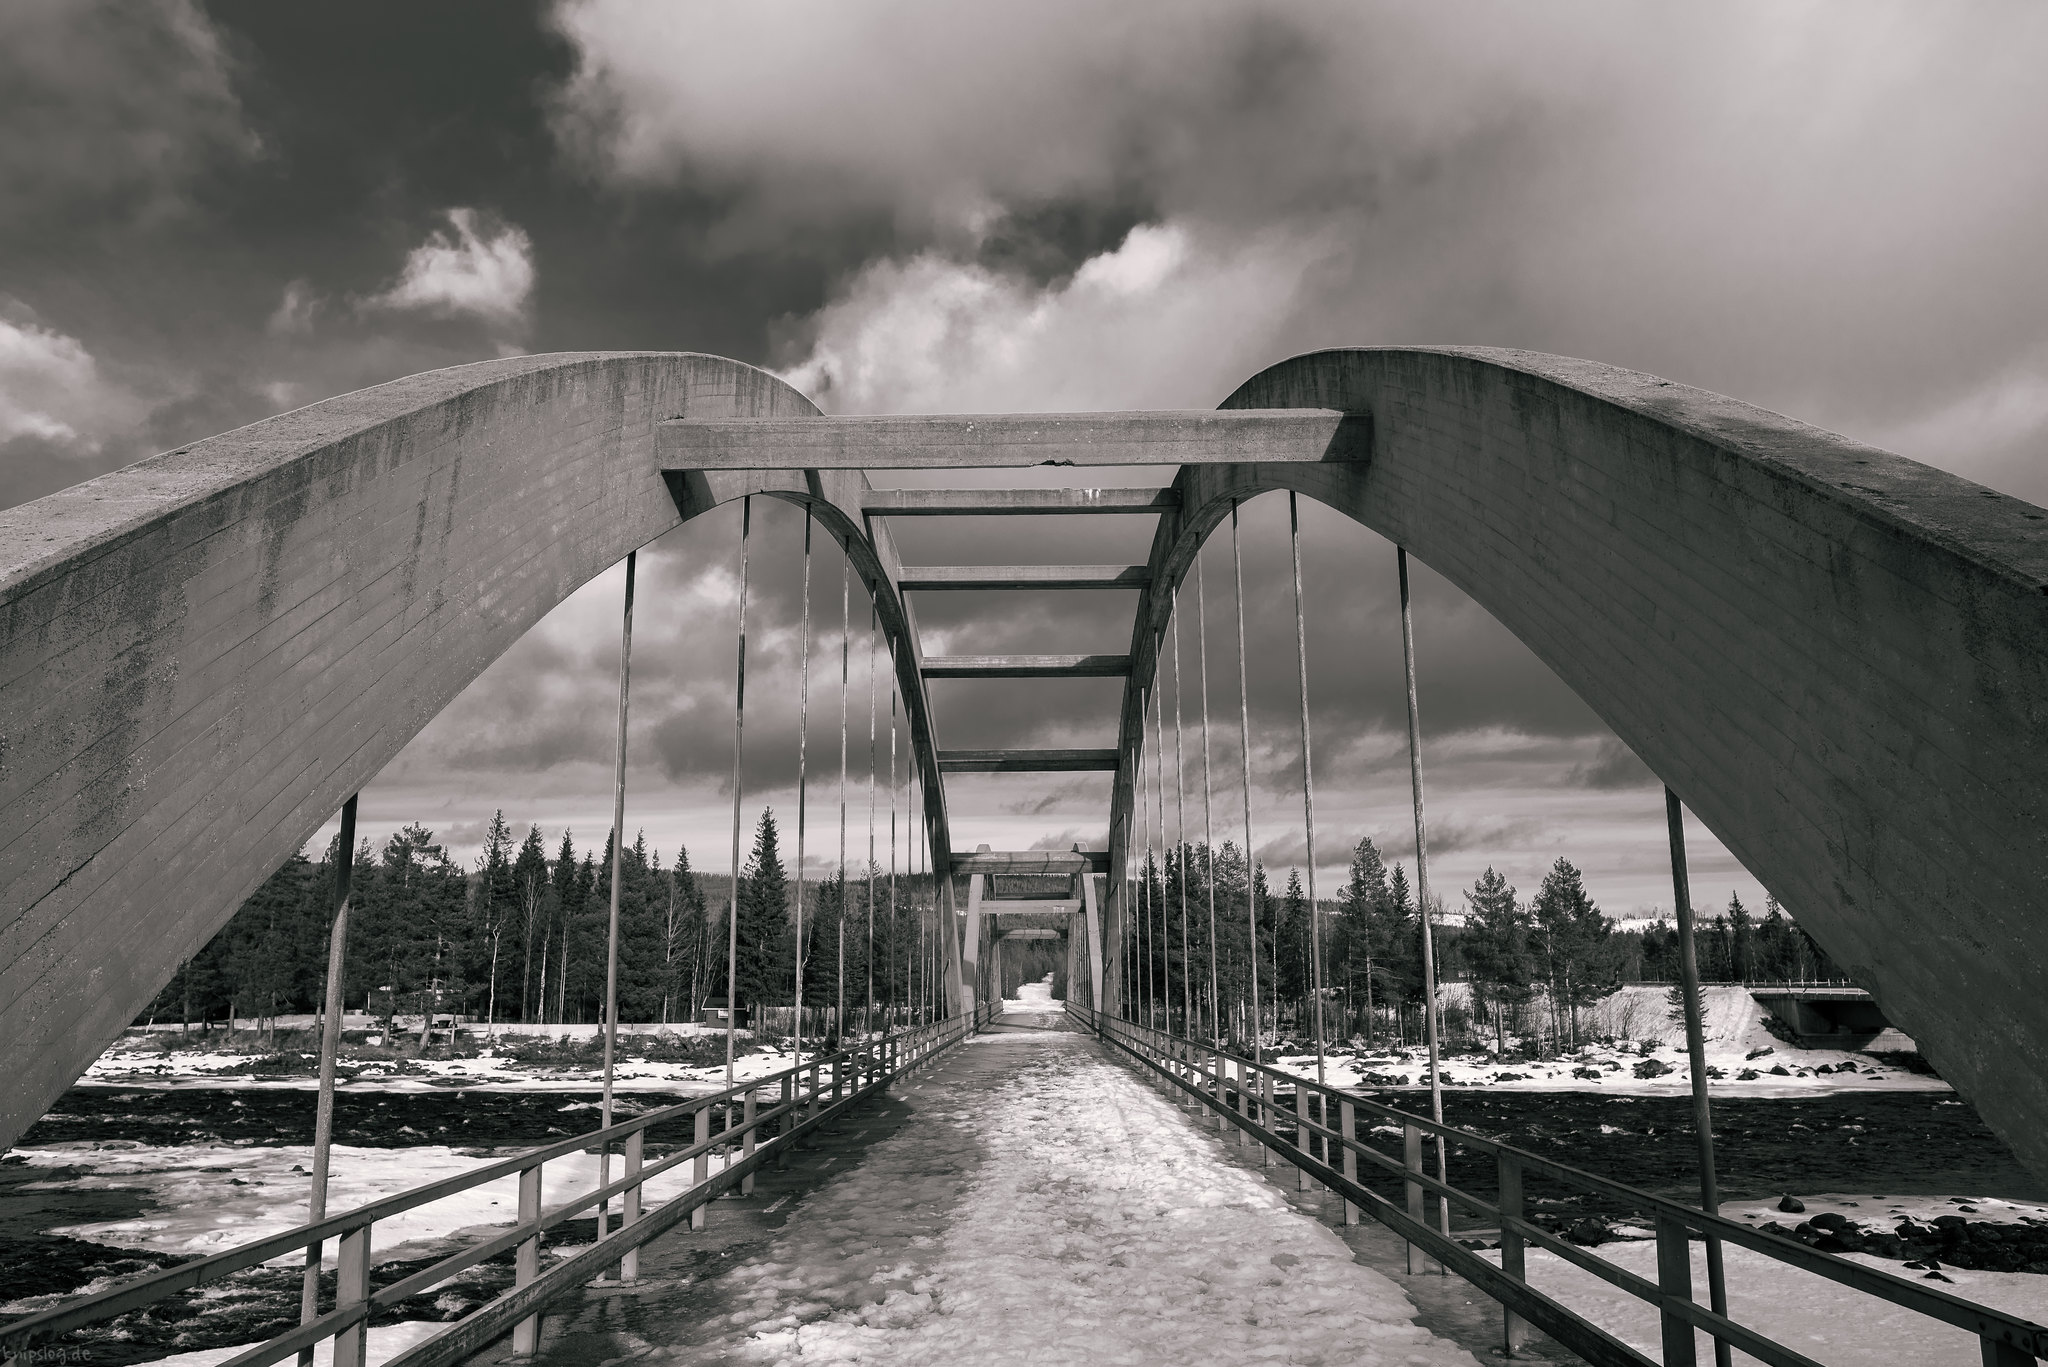 Bridge over the cold lake